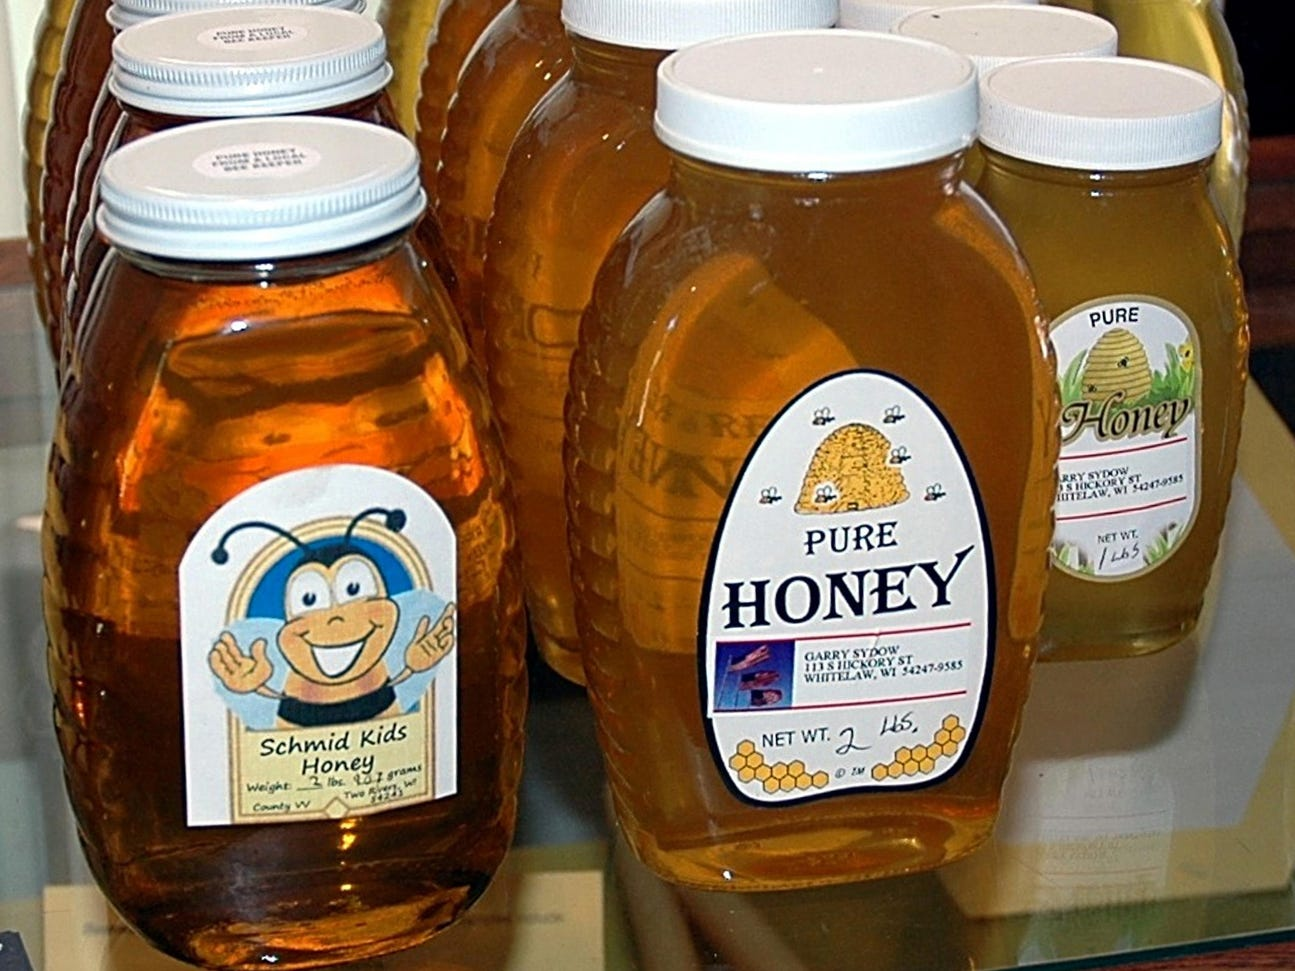 Honey can be safely stored at room temperature indefinitely.